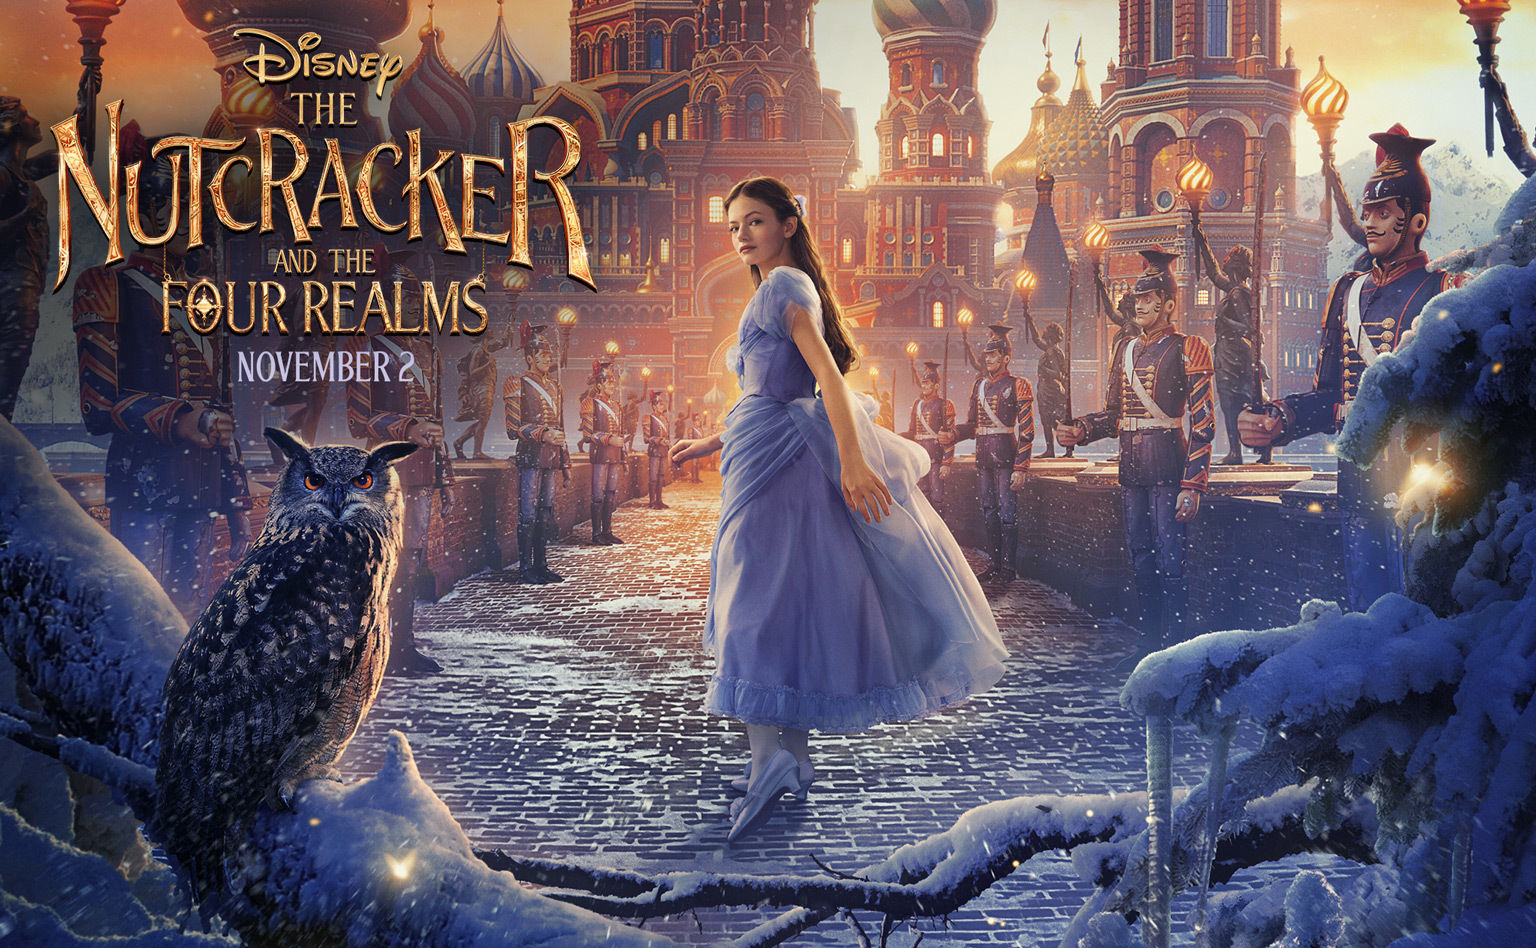 Image result for the nutcracker and the four realms movie poster uk